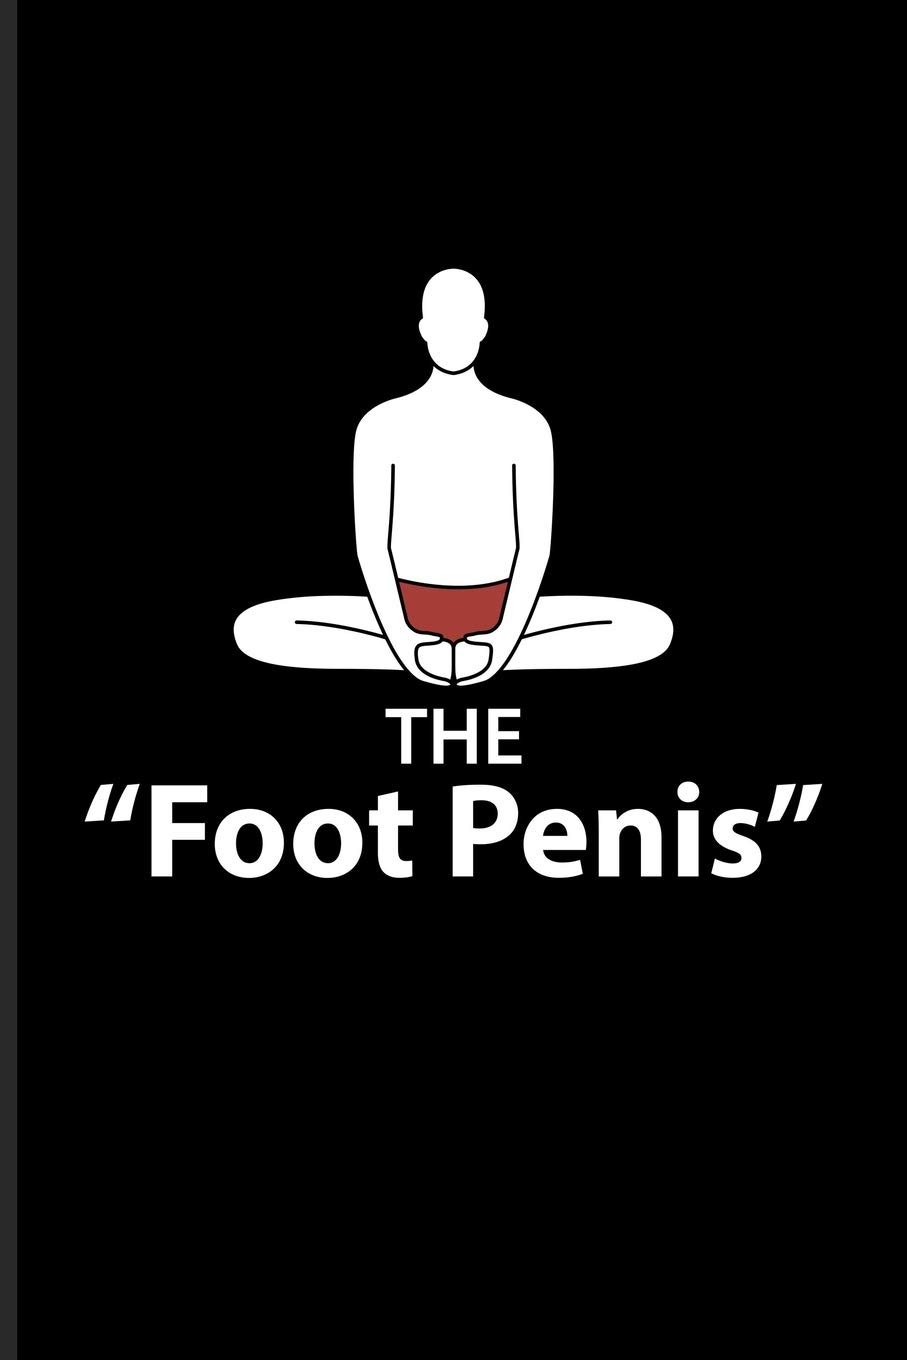 Buy The Foot Penis Funny Yoga Poses Journal For Funny Yoga Quotes Yoga At Home Yogi Lifestyle Relaxation Balance Mindfulness Meditation Fans 6x9 100 Blank Lined Pages Book Online